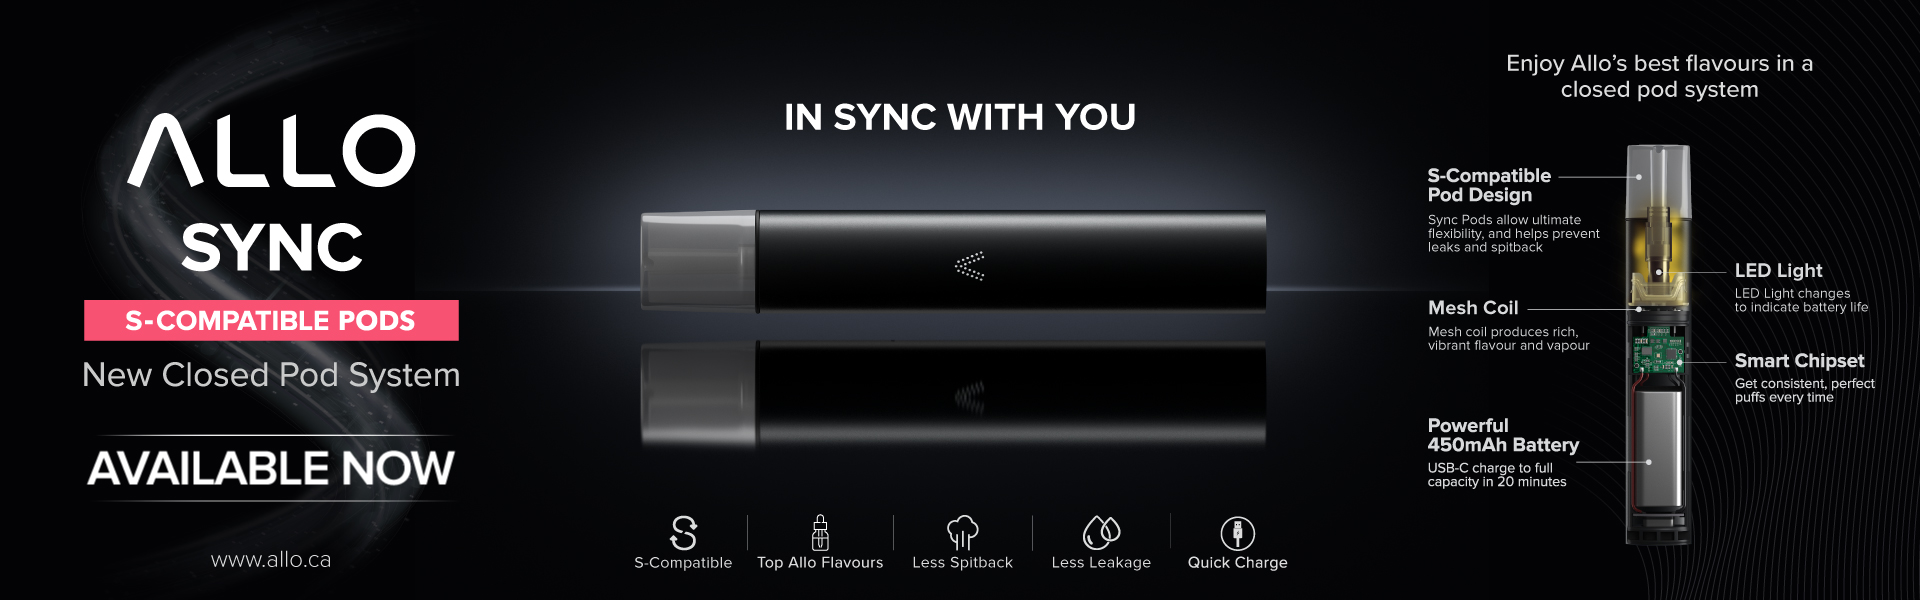 ALLO Sync Pod System - Now Avail!